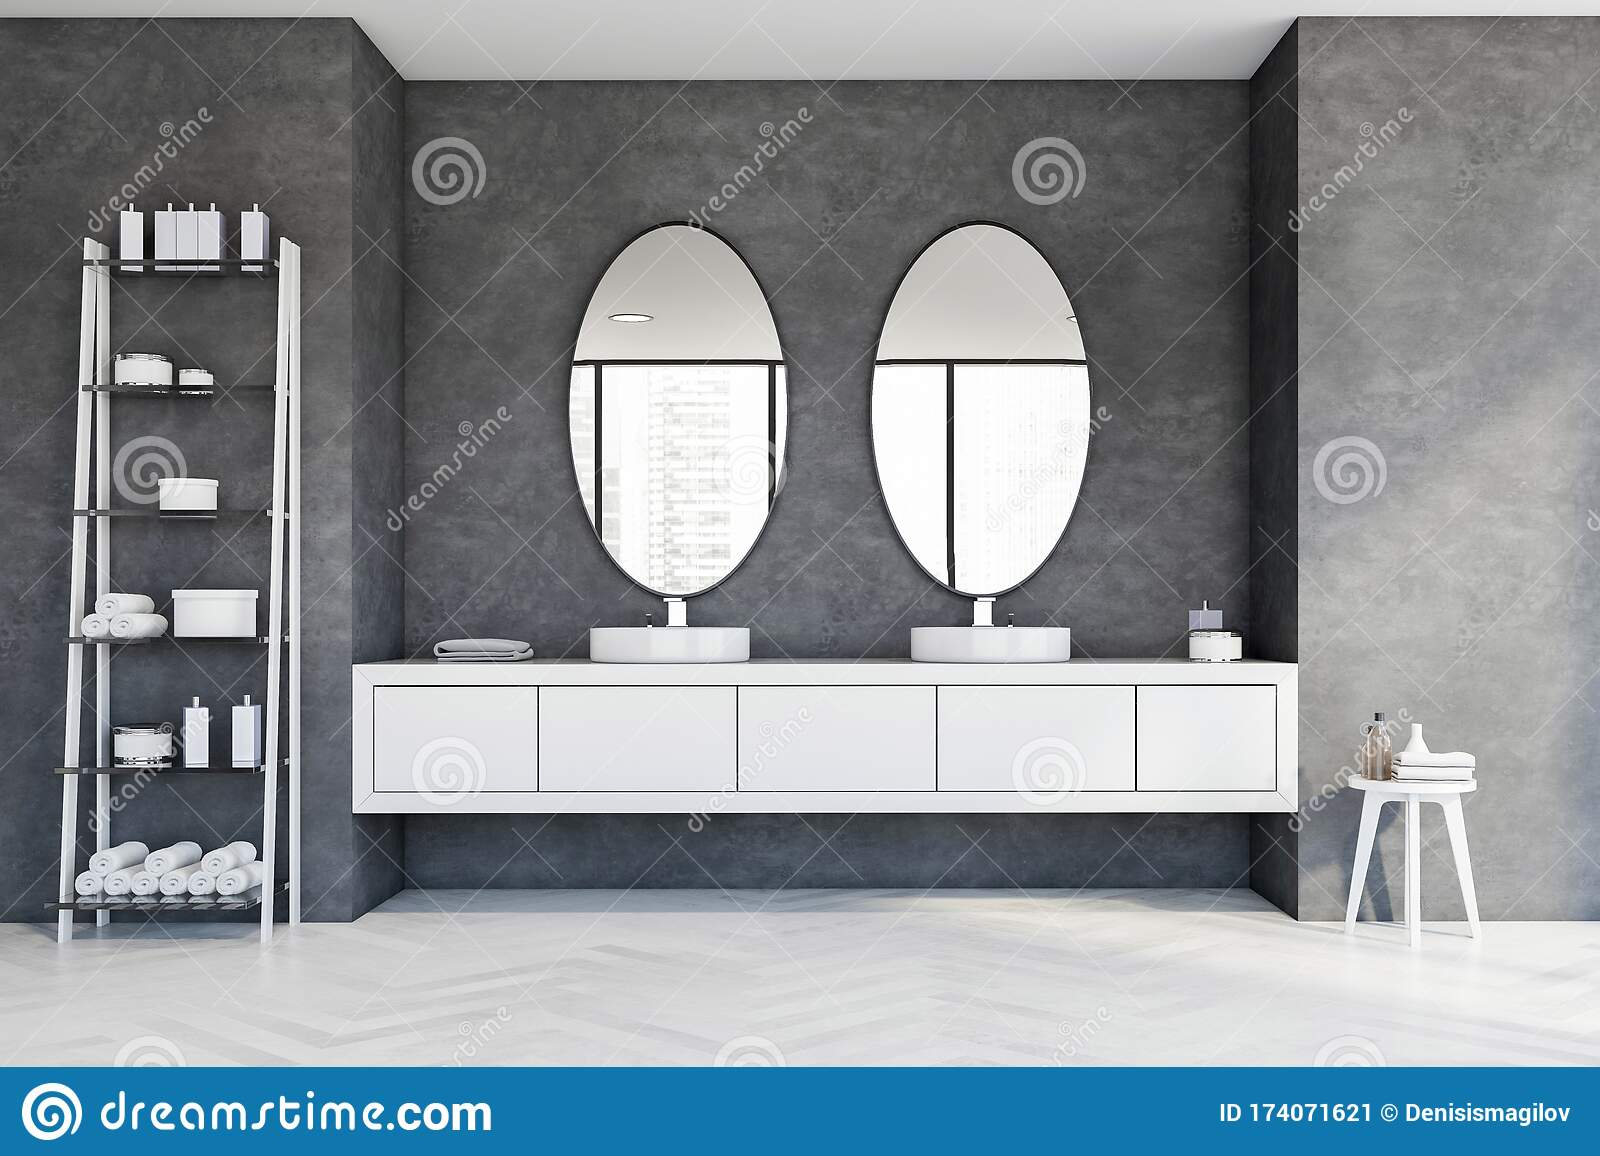 Round Double Sink In Grey Bathroom Oval Mirrors Stock Illustration Illustration Of Contemporary Home 174071621